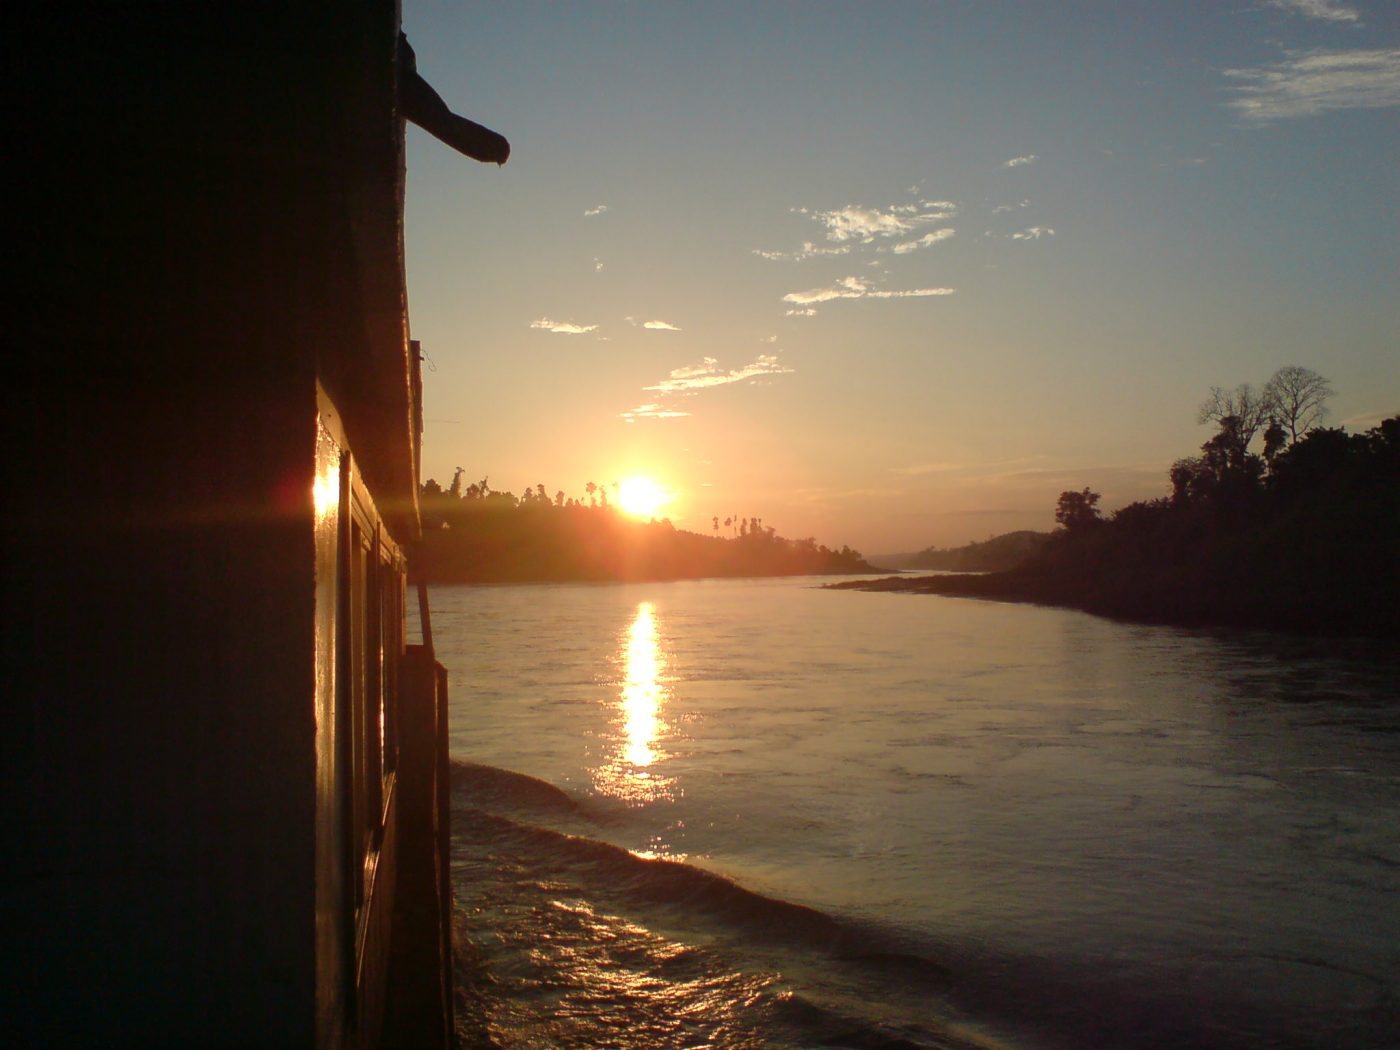 Sunset on the cargo boat